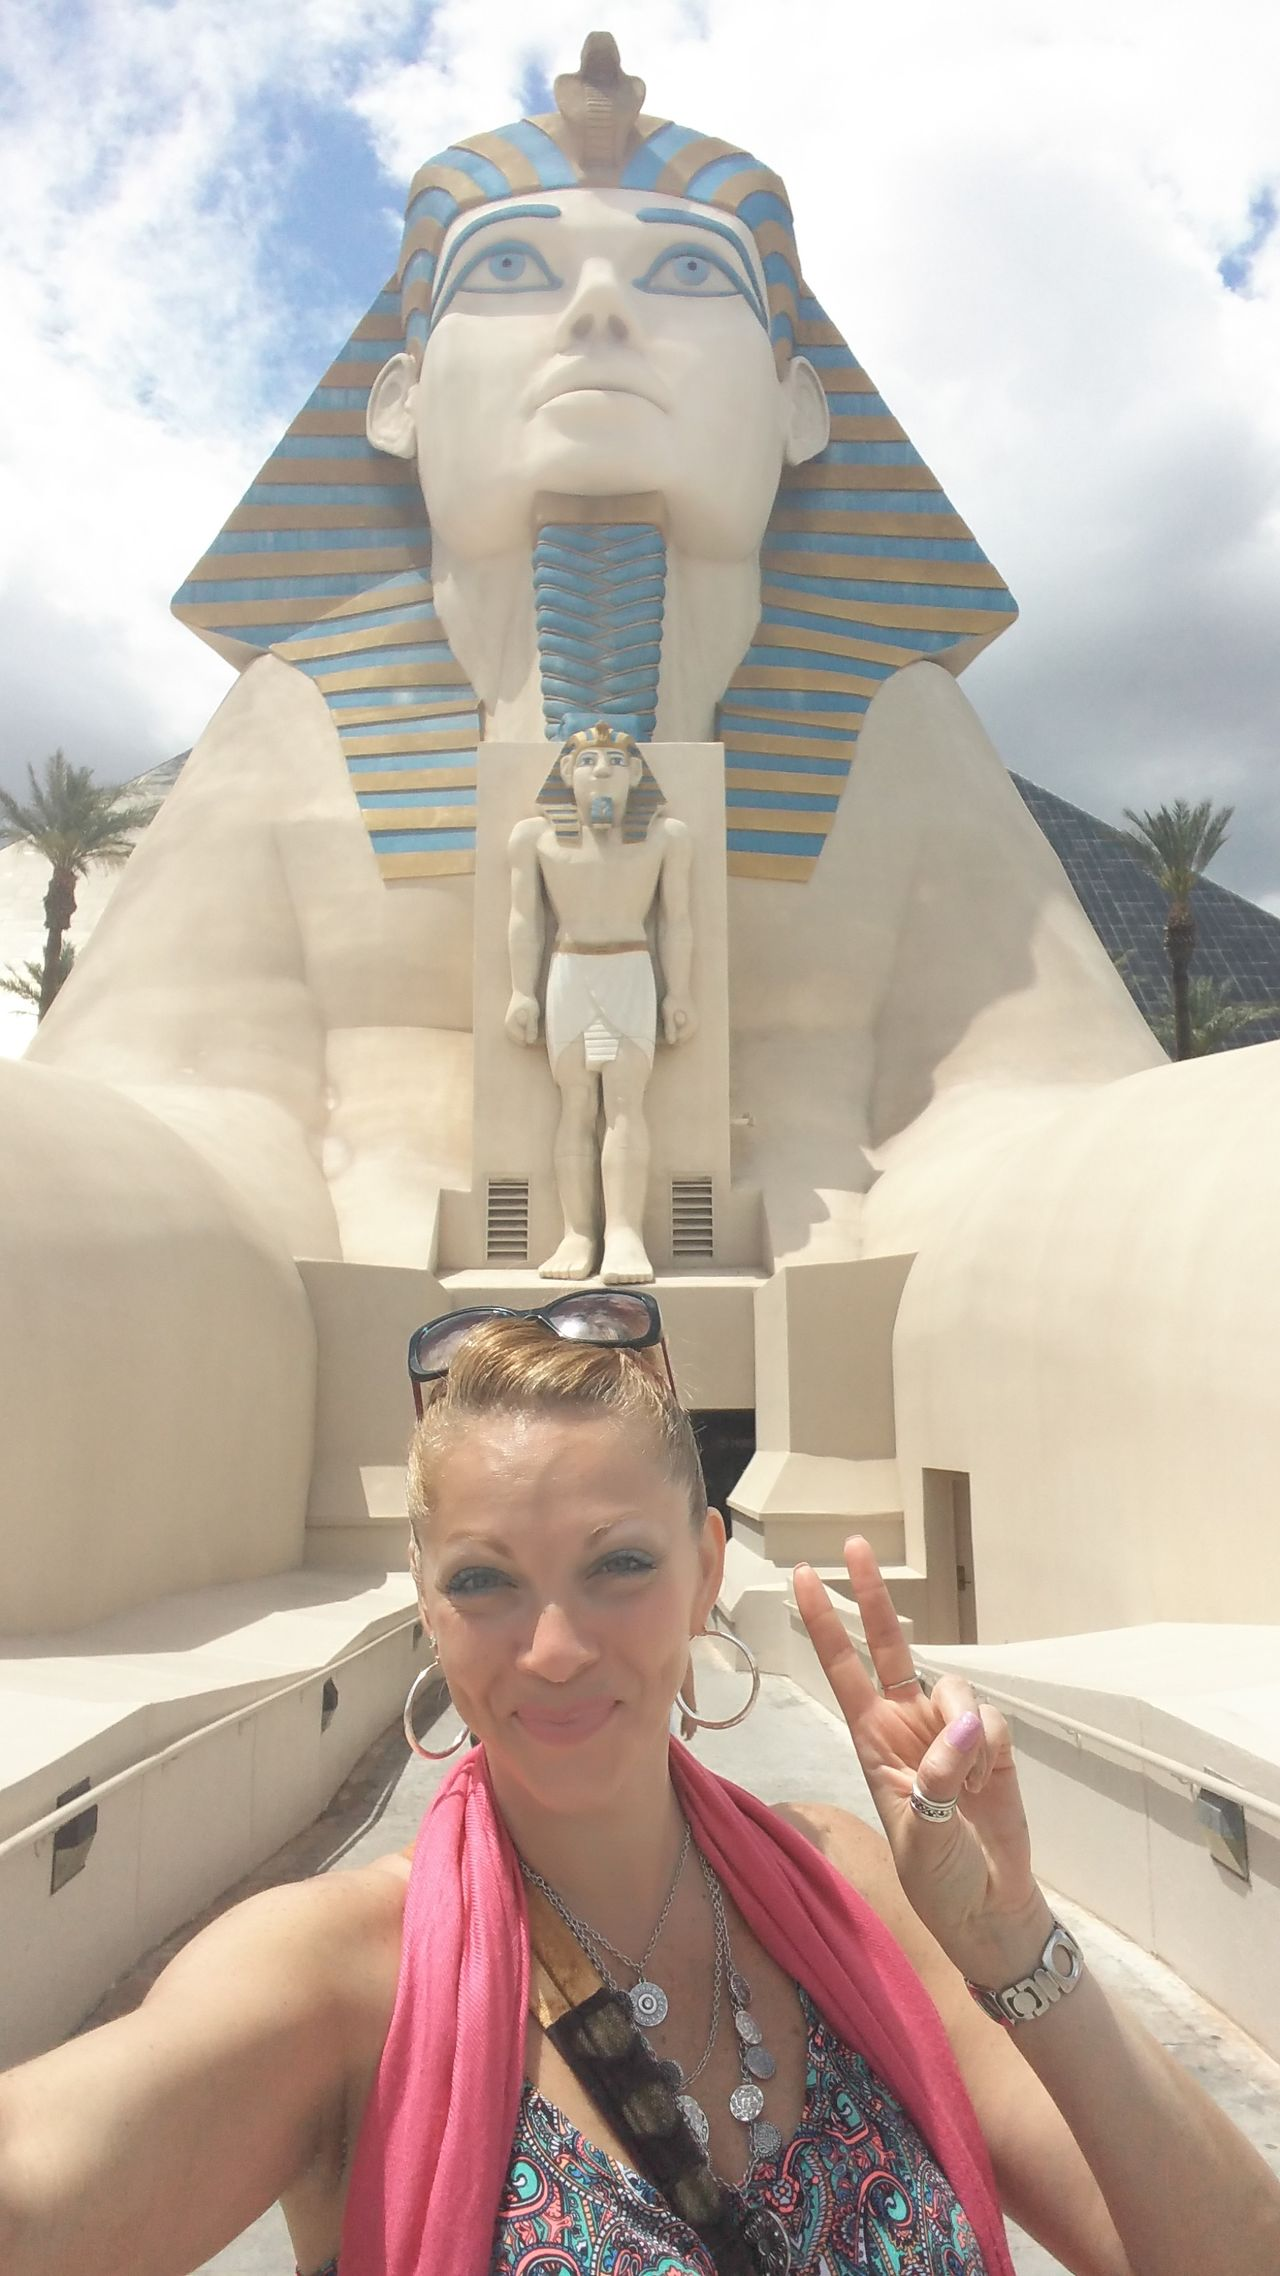 Solo birthday trip to Vegas! Feel The Journey Vegas  Solo Trip Solo Traveler! Meeting Strangers Hello World Peace Luxor Hotel The Sphinx Original Experiences Girl Power